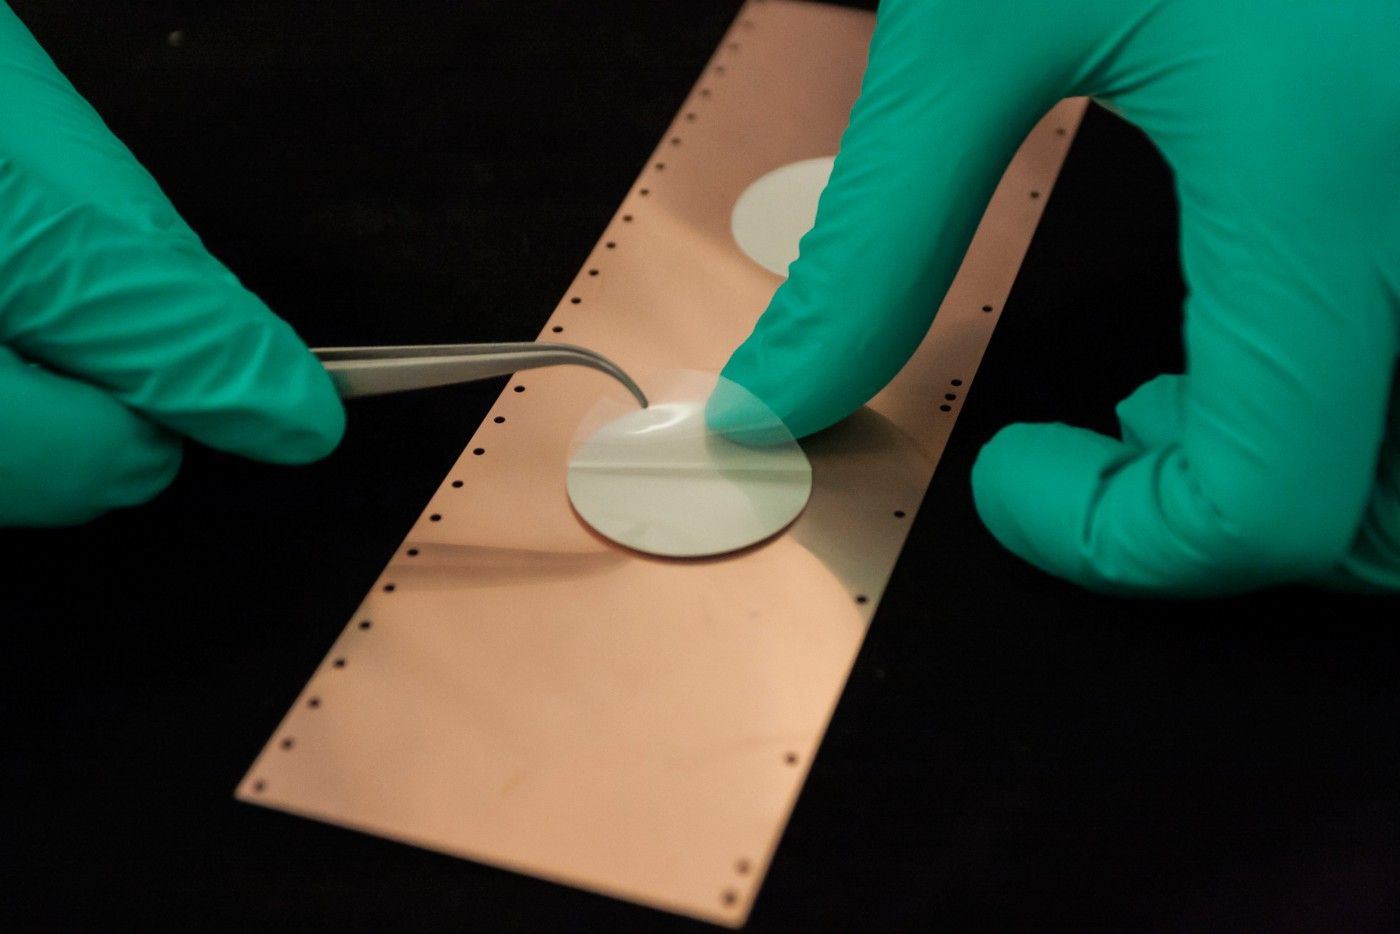 Photo of hands with green gloves using tweezers to peel film covering from loctite ablestik cf 3366 preformed thermallly and electrically conductive adhesive material attached to a copper plate with black background